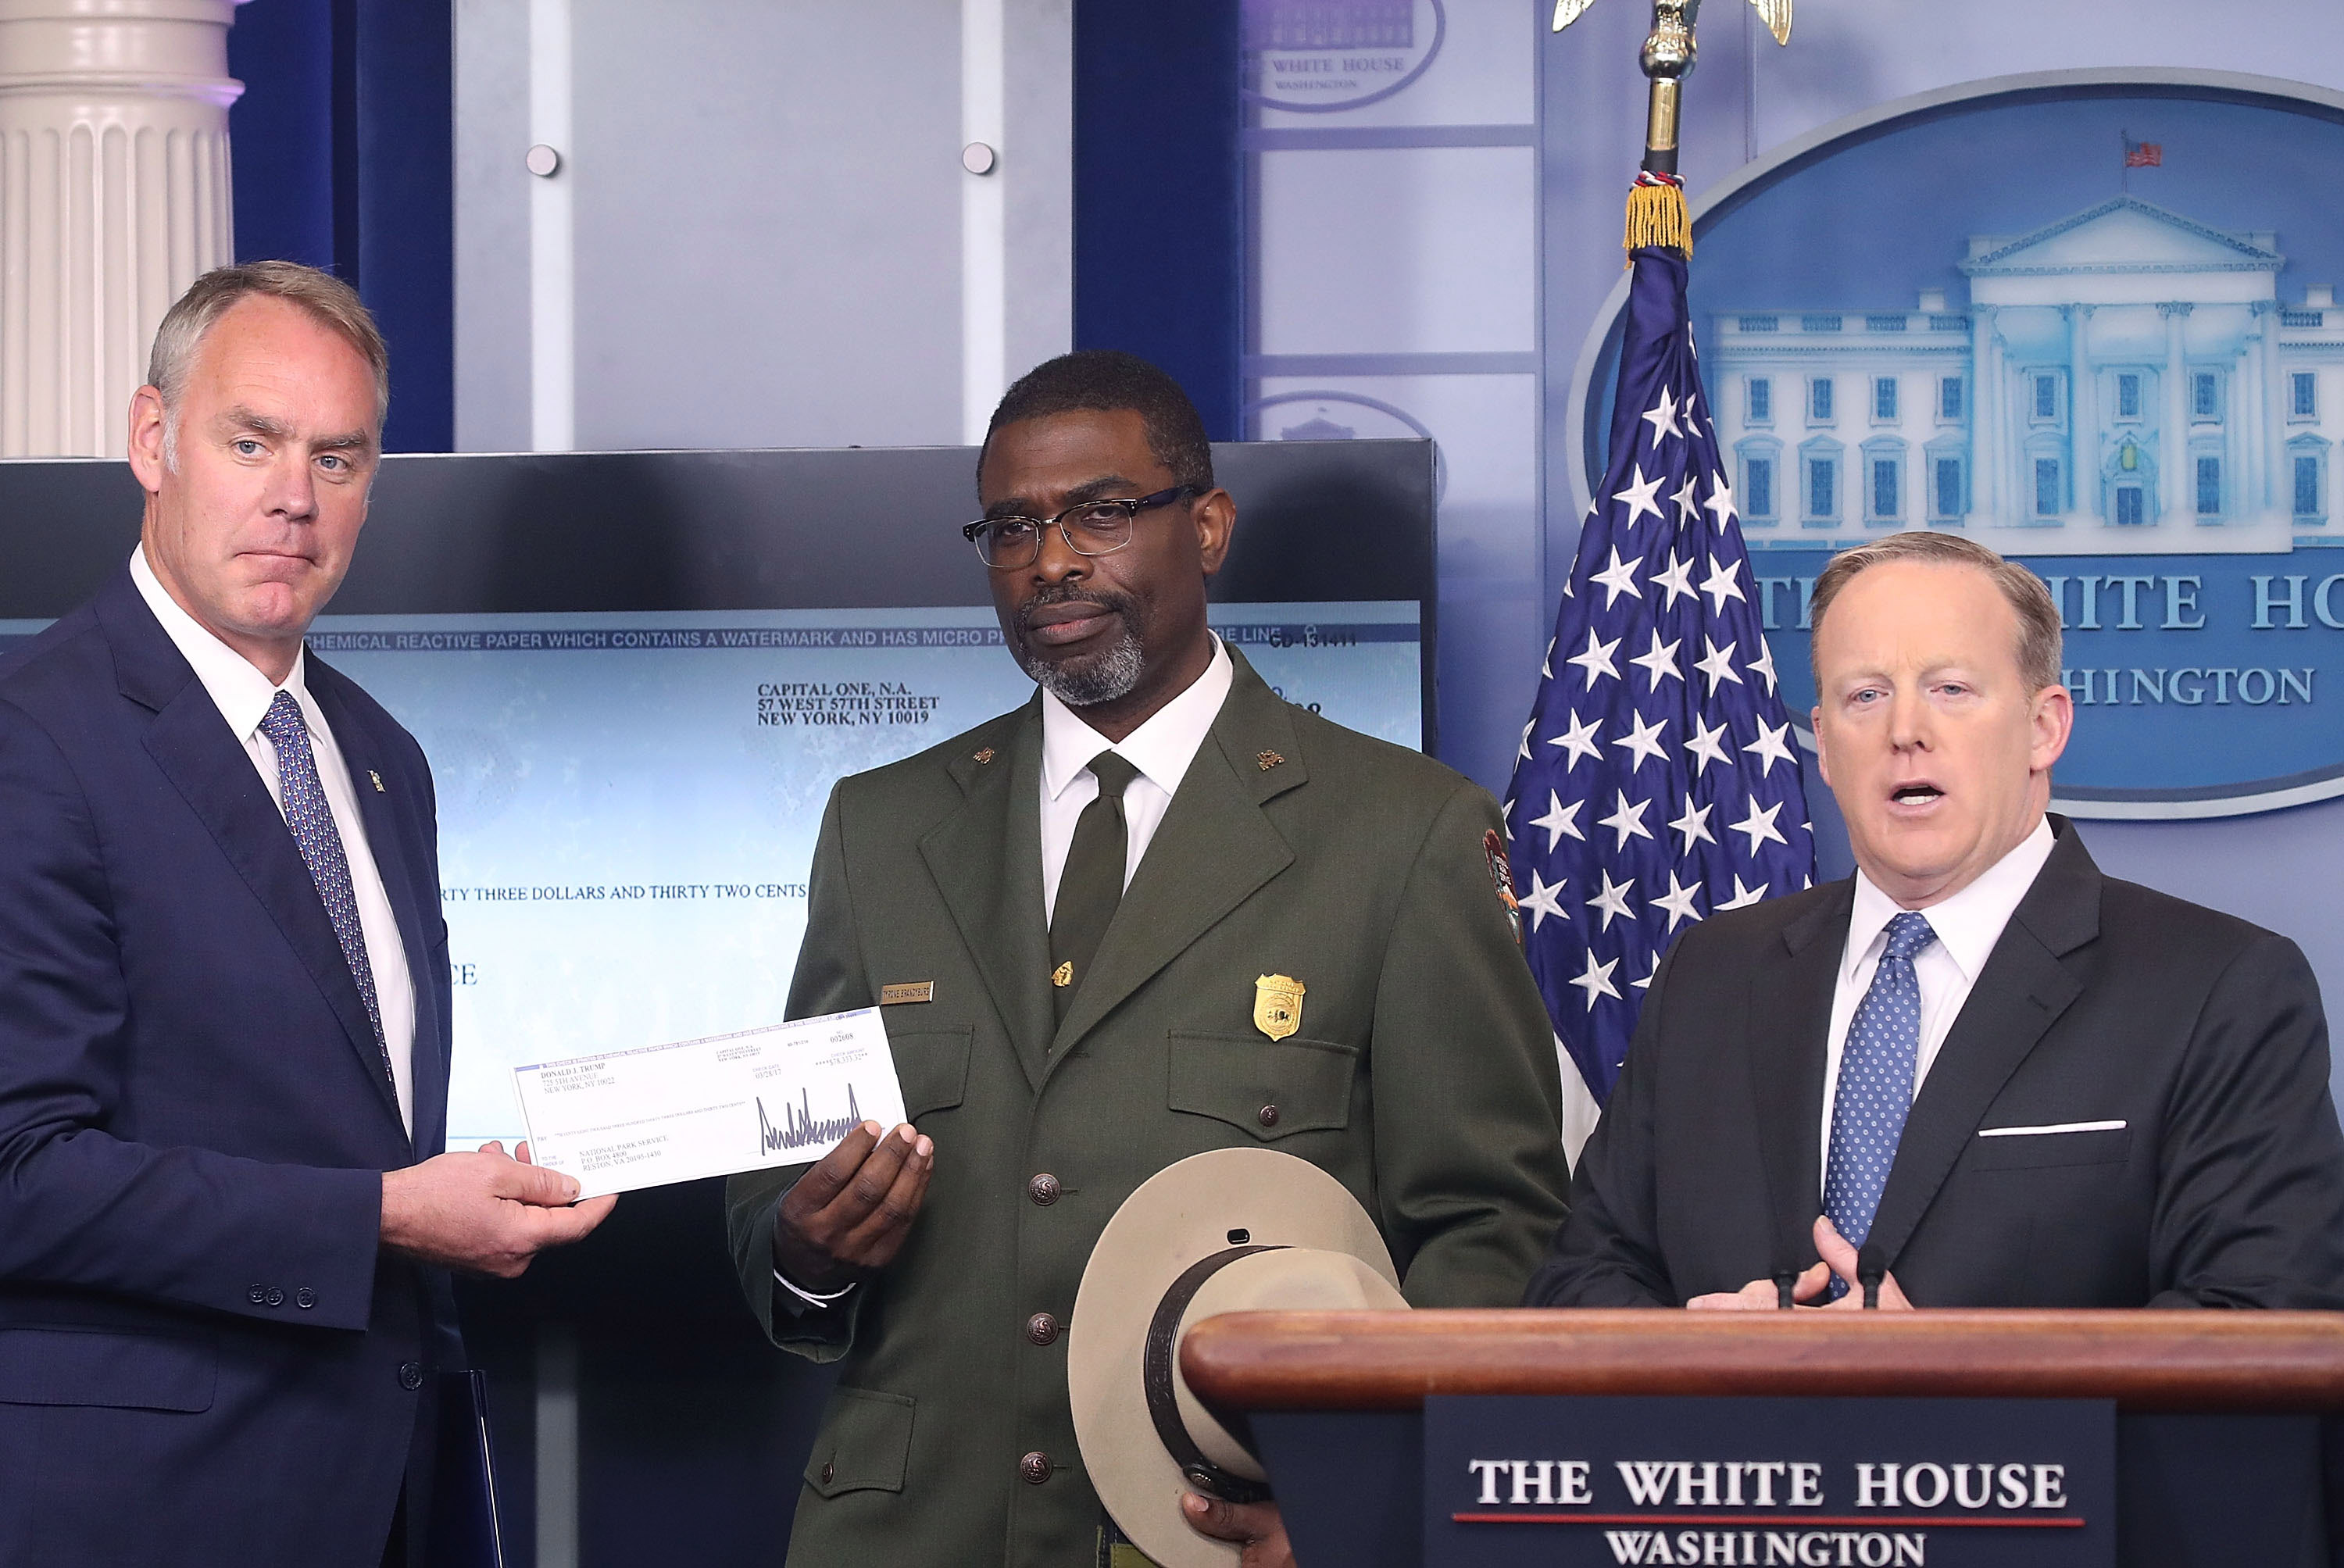 White House Press Secretary Sean Spicer gave Interior Secretary Ryan Zinke (L) the first-quarter check of President Donald Trump's salary, which he donated to the National Park Service as Tyrone Brandyburg (C), Harpers Ferry National Historical Park superintendent, looks on during the daily press briefing at the White House on April 3, 2017.